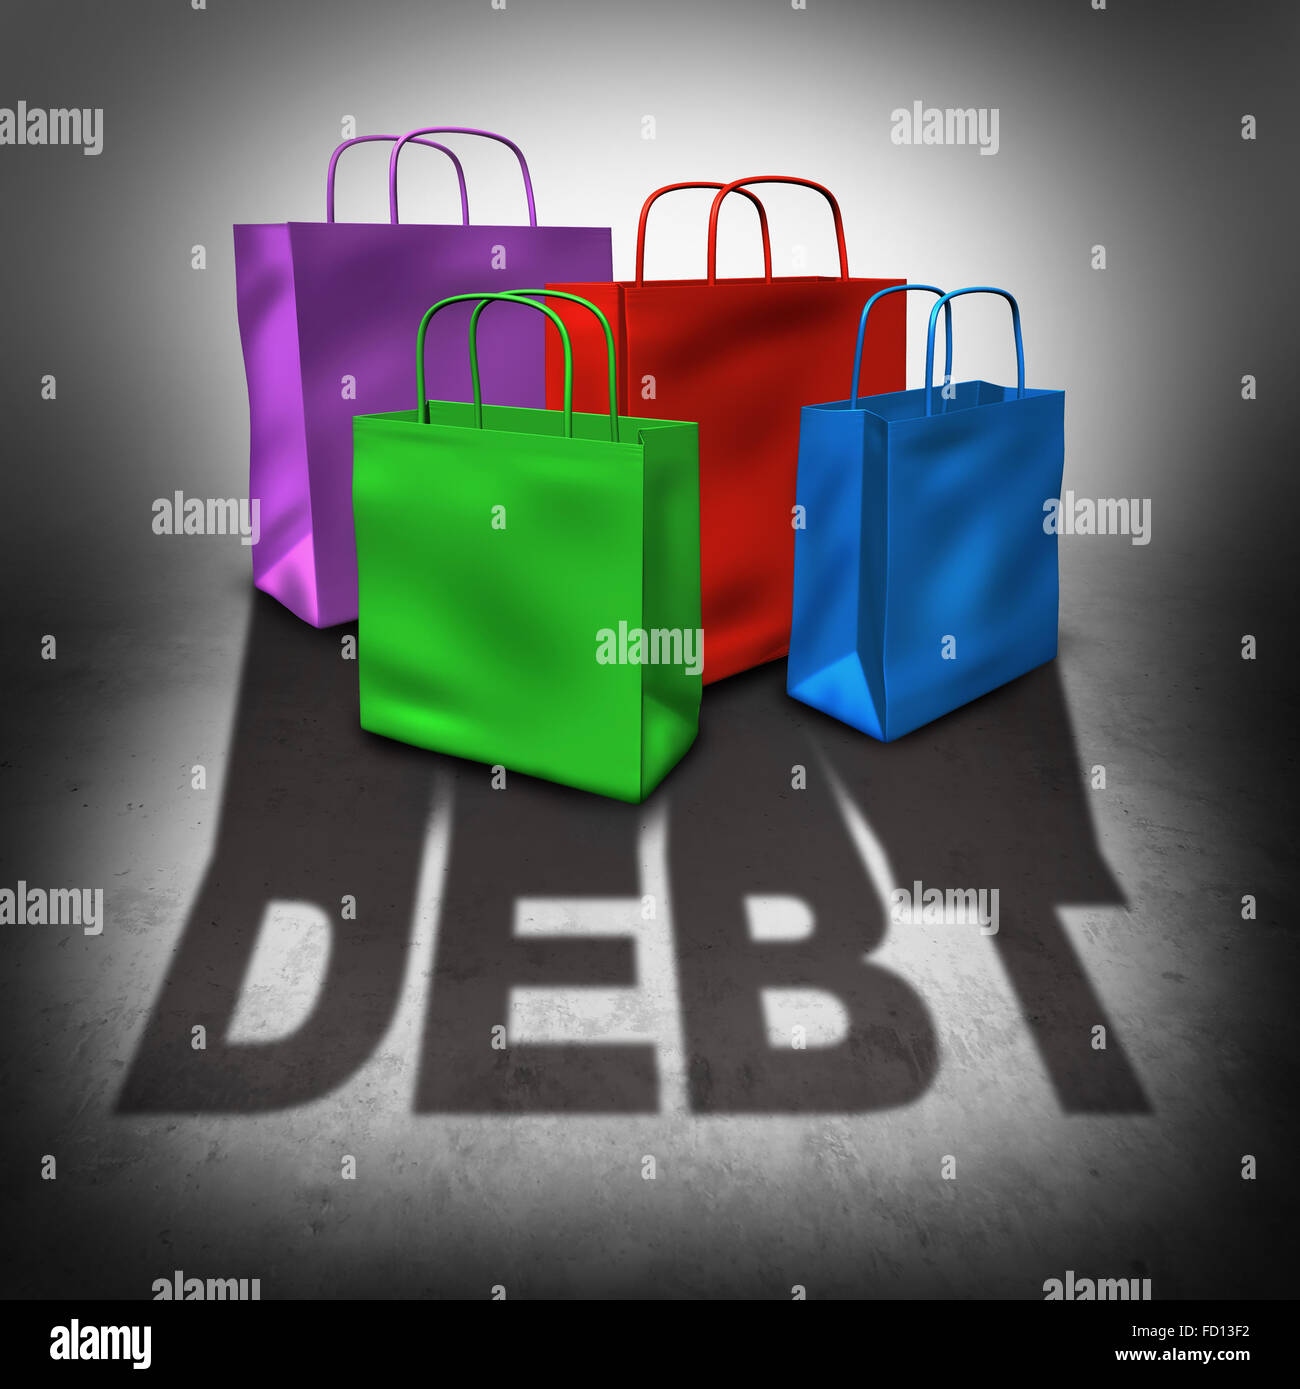 Shopping debt and credit card spending crisis as a group of retail bags casting a shadow with text as a financial - Stock Image